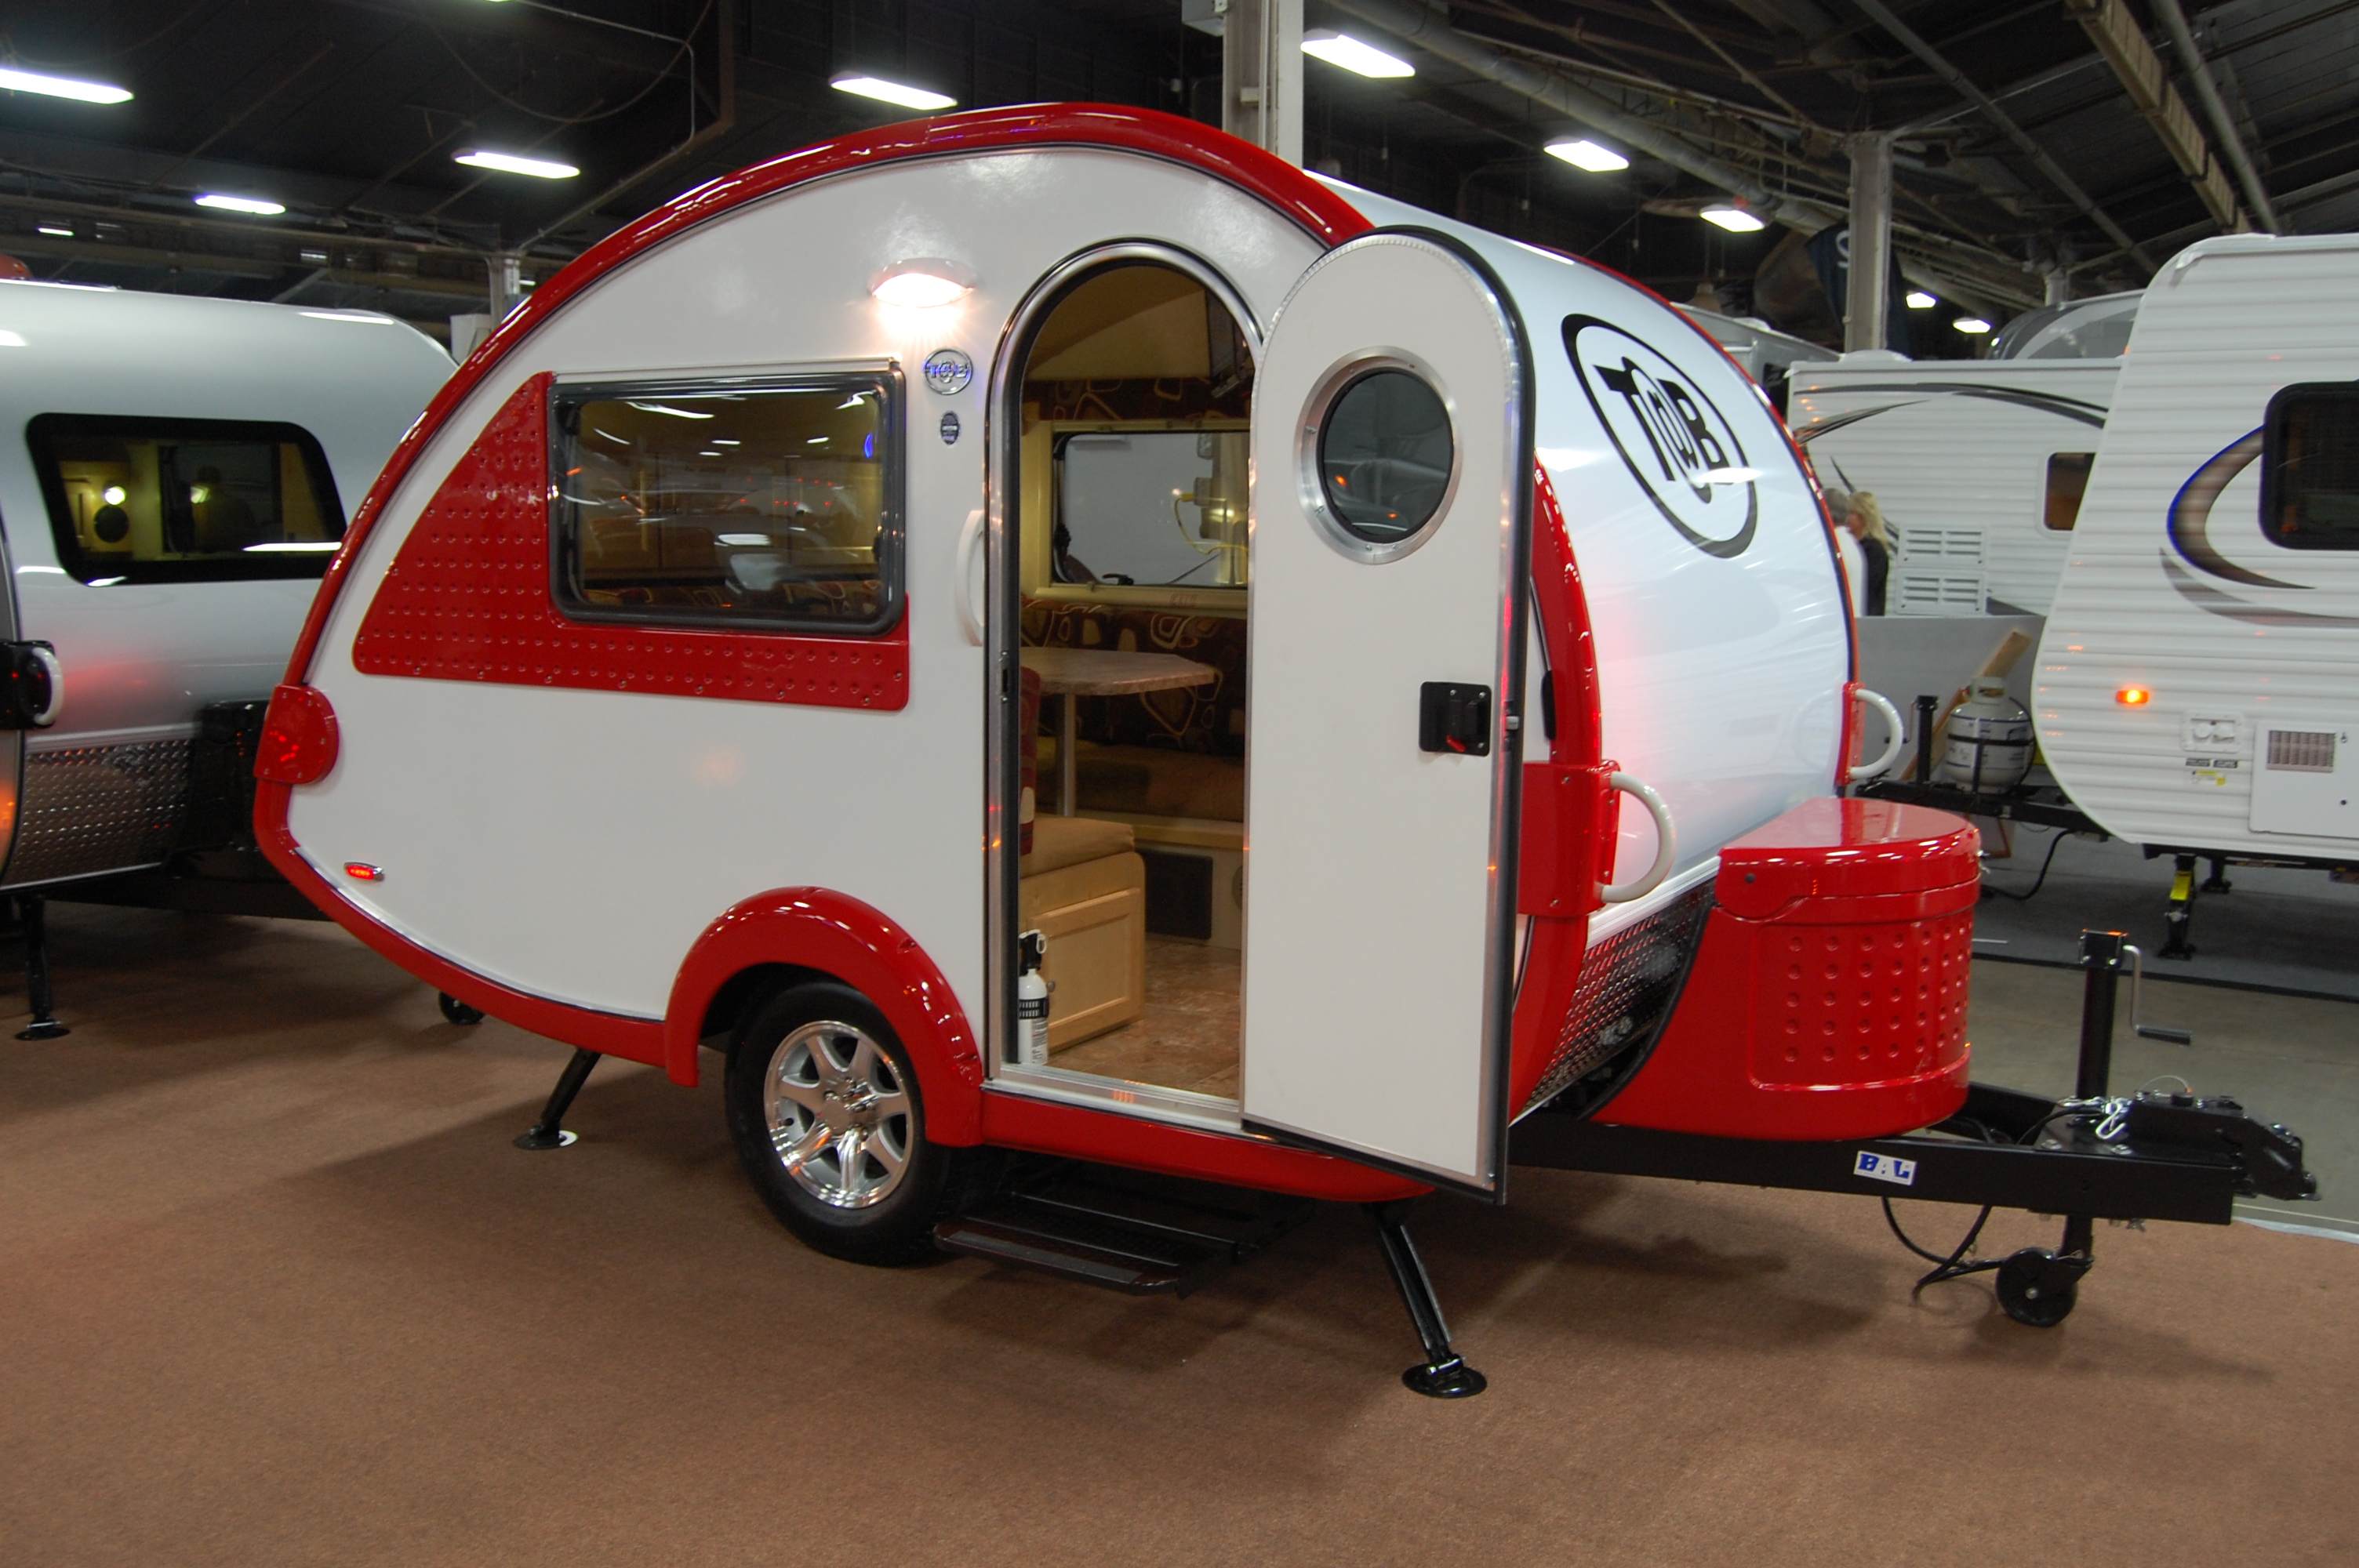 Amazing Pics Photos For Sale Teardrop Camper Http Www Riverrunrv Com